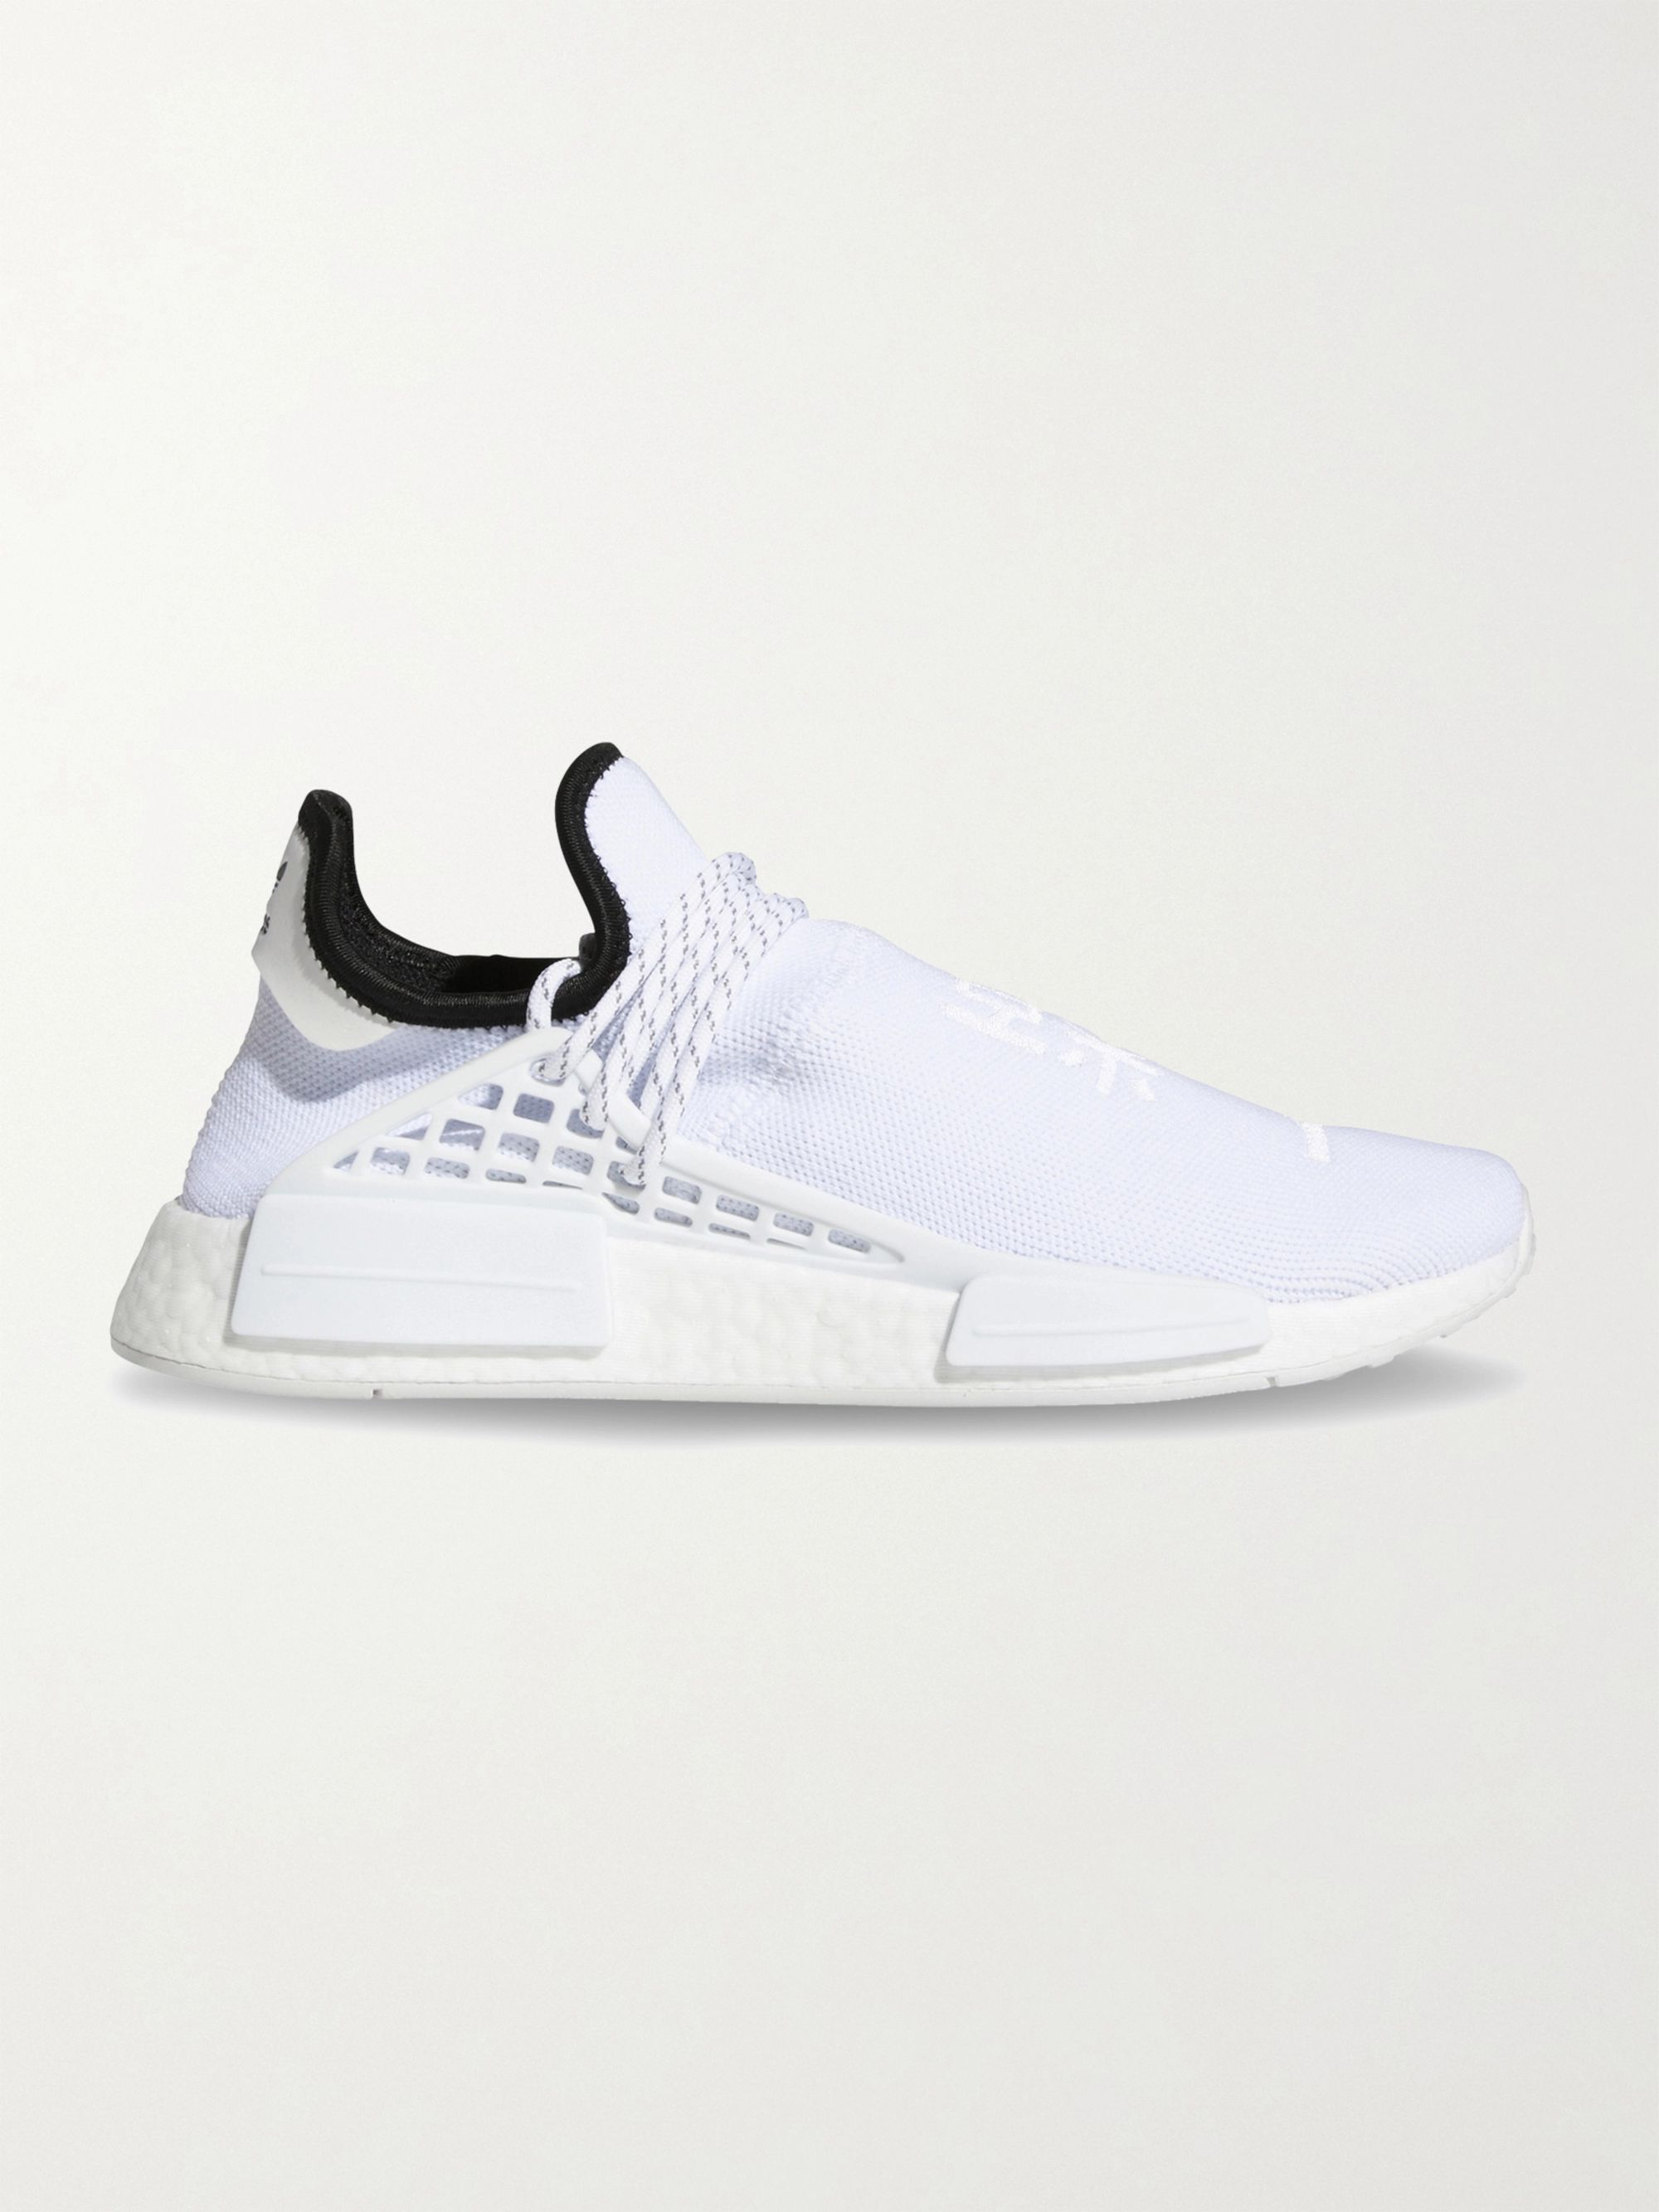 ADIDAS ORIGINALS + Pharrell Williams Hu NMD Rubber-Trimmed Primeknit Sneakers